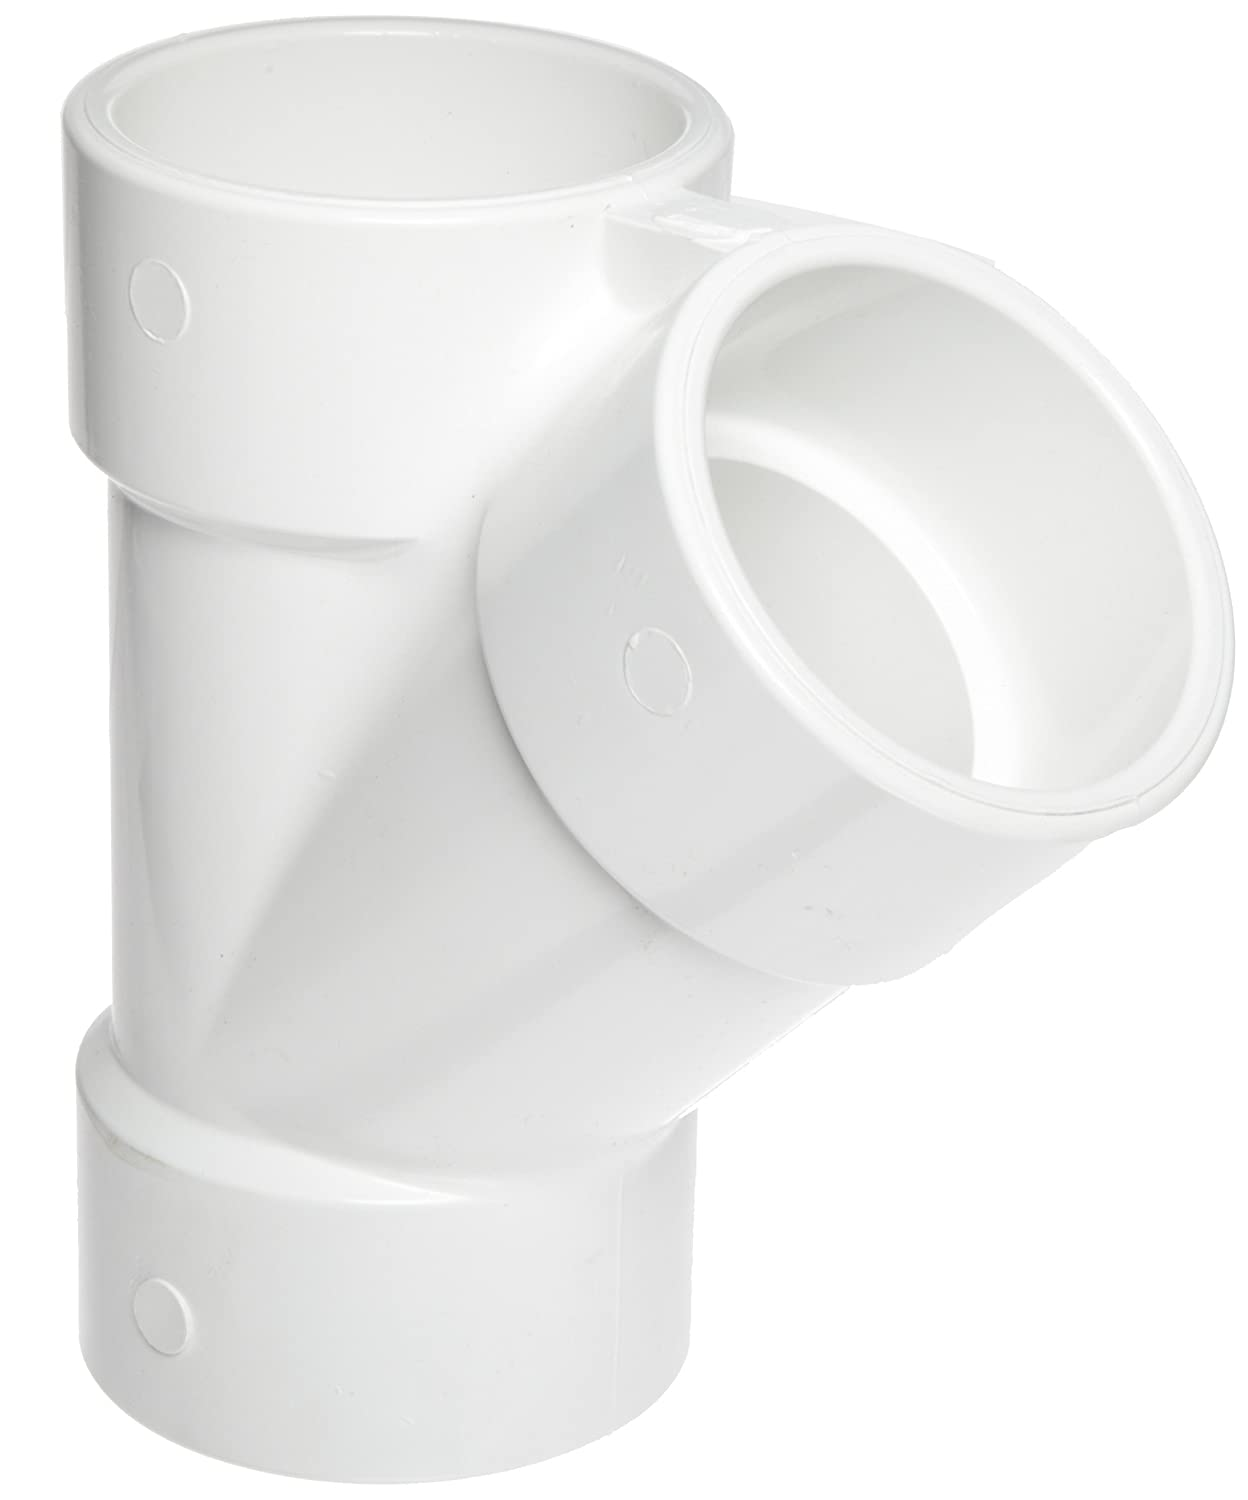 Spears 475 Series PVC Pipe Fitting, Wye, Schedule 40, 2 Socket 2 Socket Spears Manufacturing 475-020